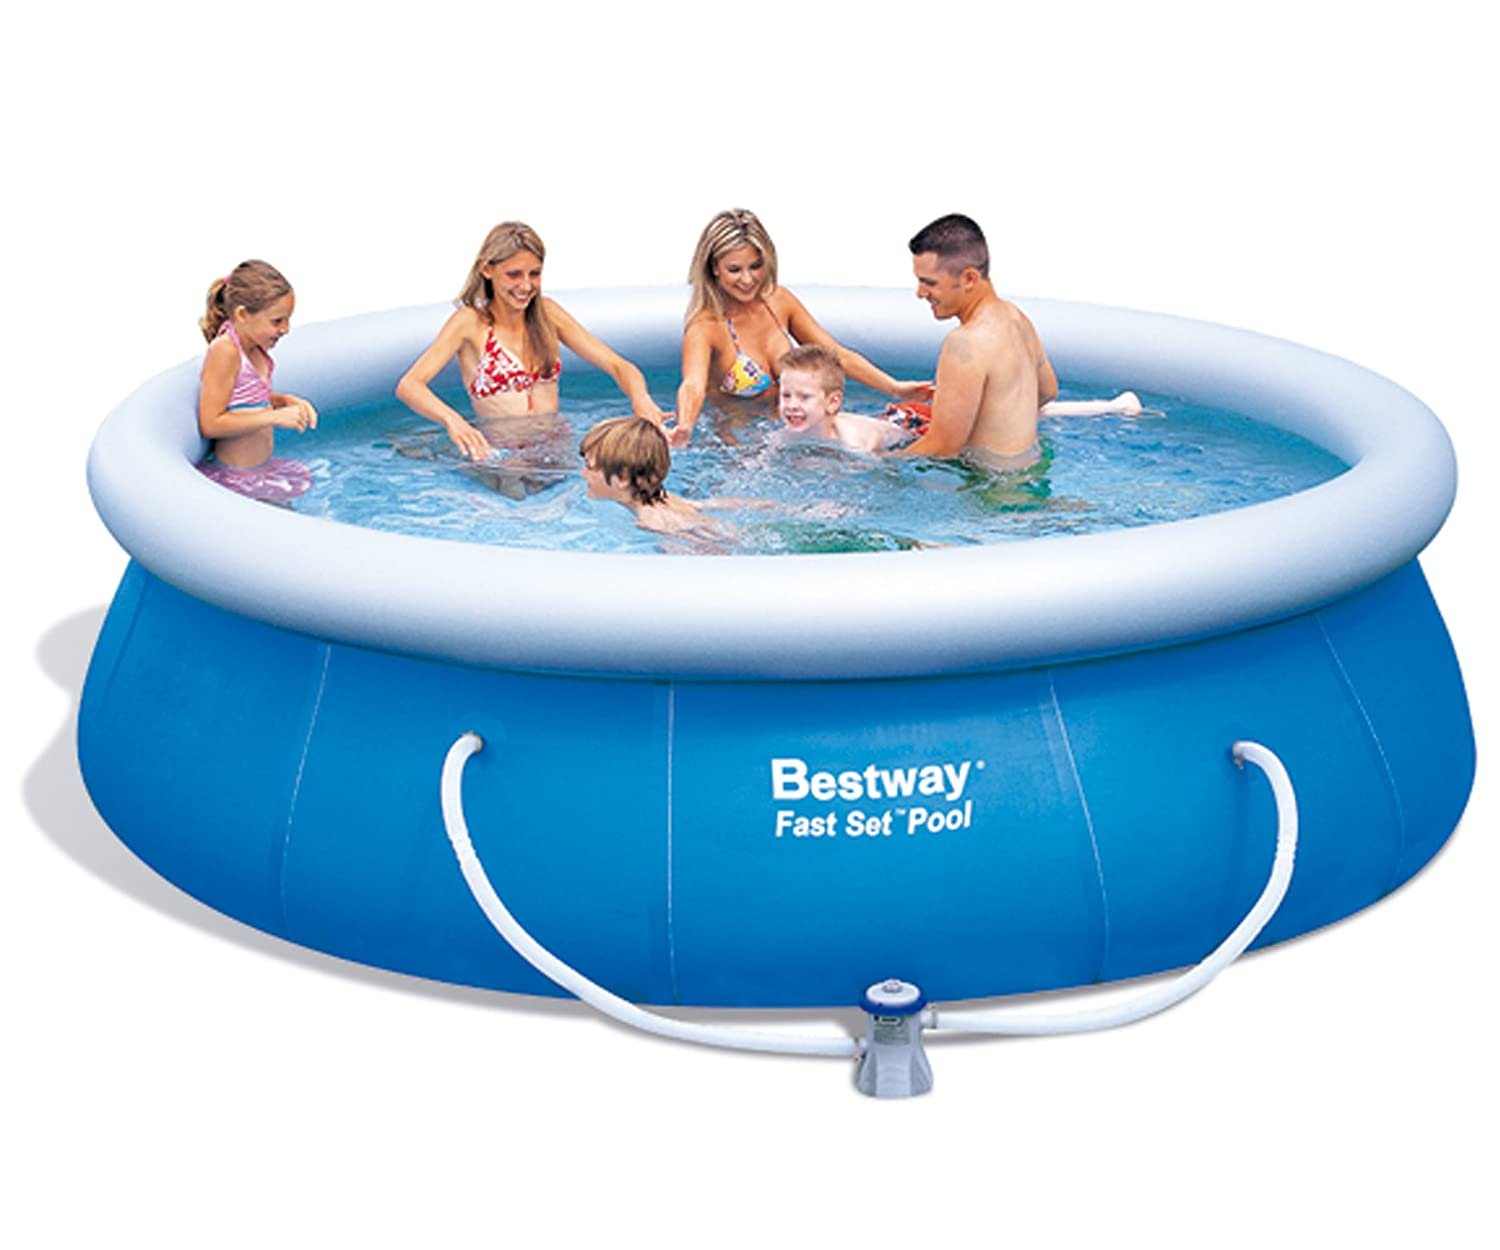 Extremely Bestway 57166 Fast Set Pool mit Filterpumpe NL, 366 x 91 cm  QS33